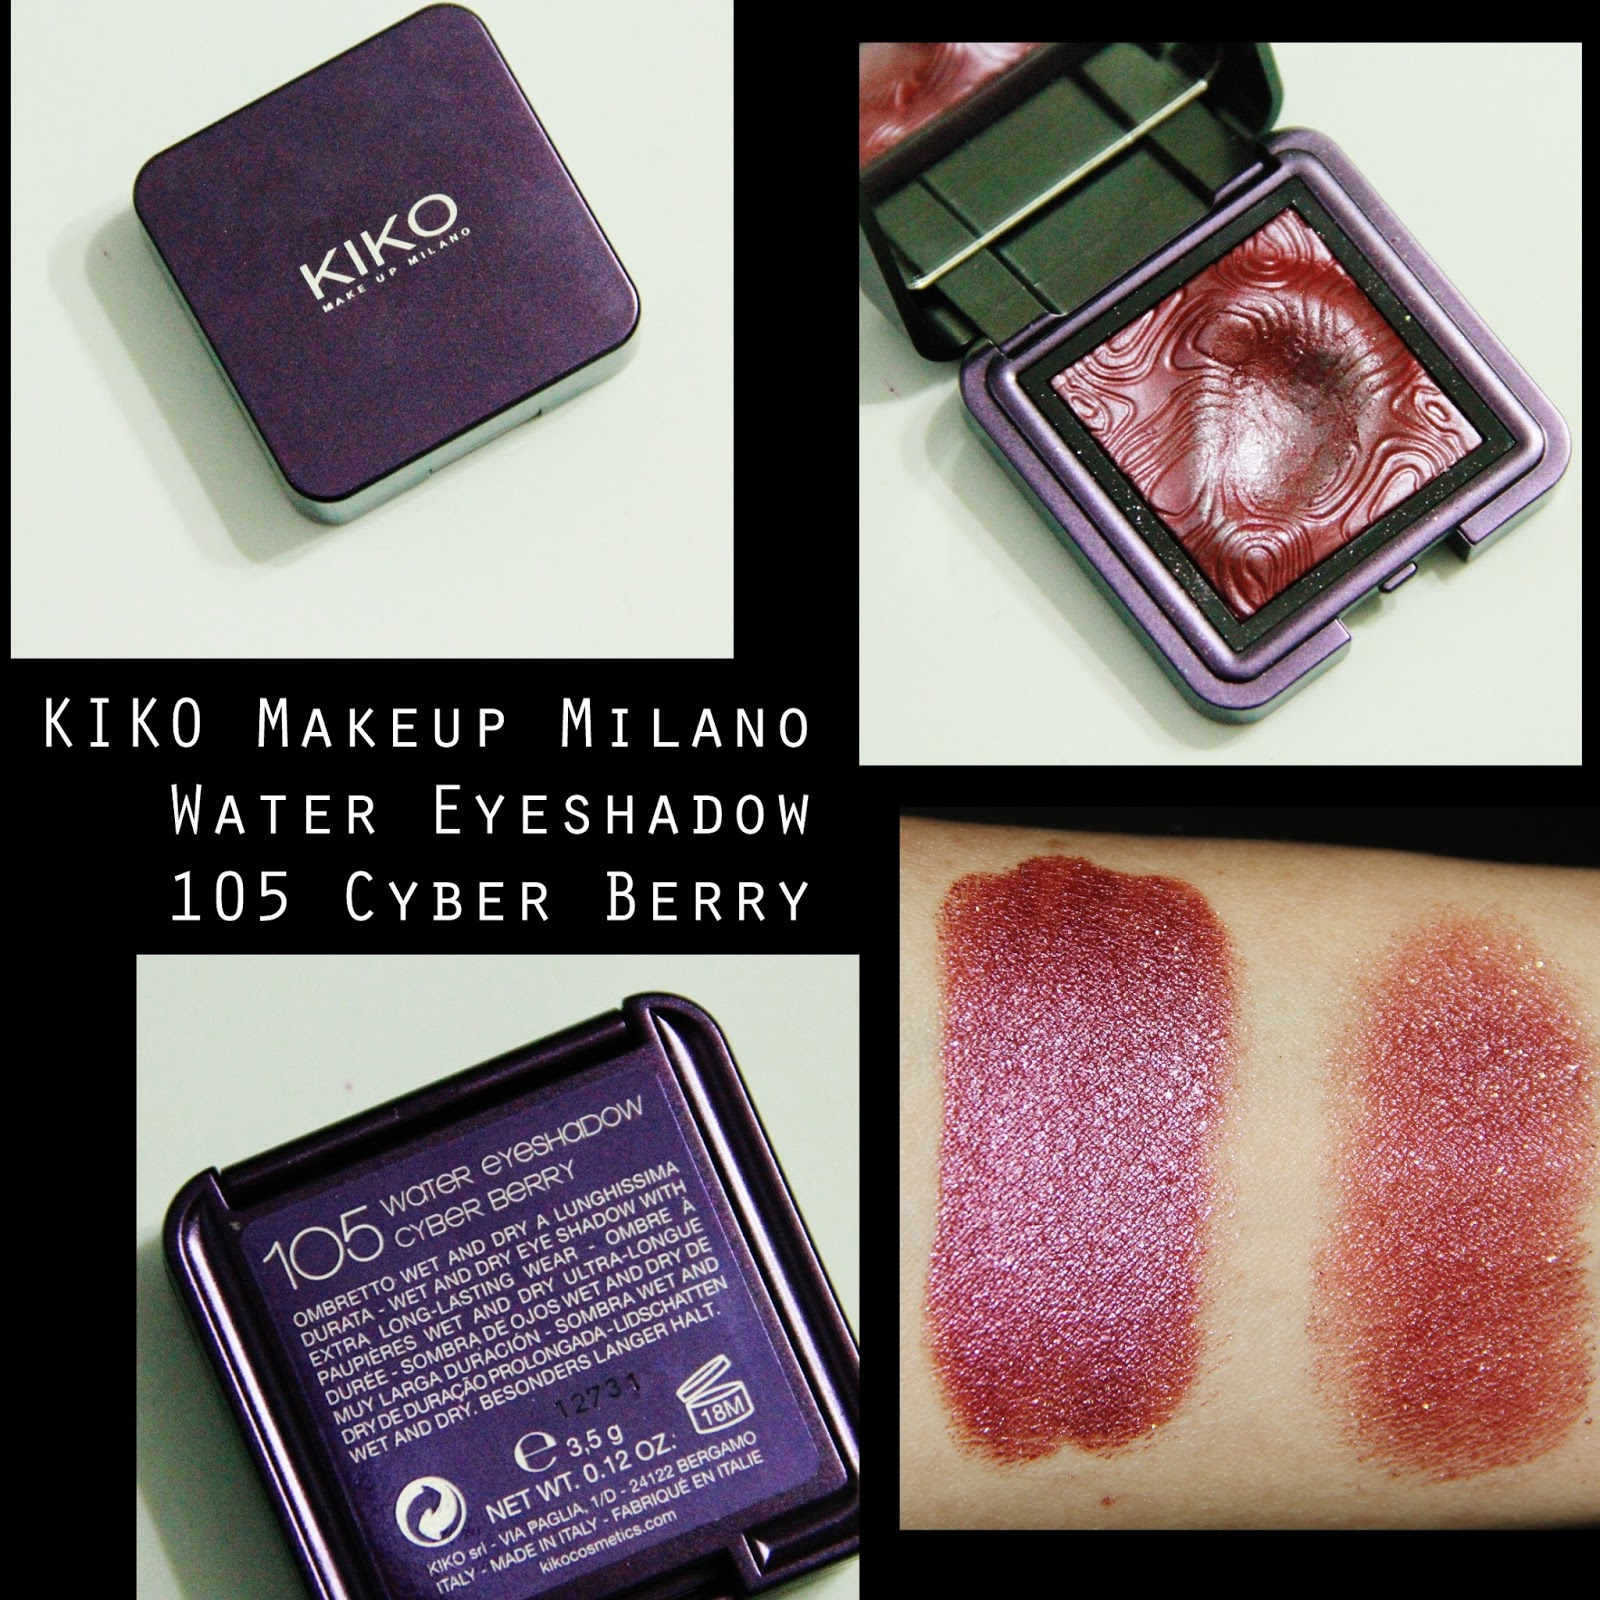 Michelaismyname Kiko Makeup Milano Water Eyeshadow 105 Cyber Berry - Kiko- makeup